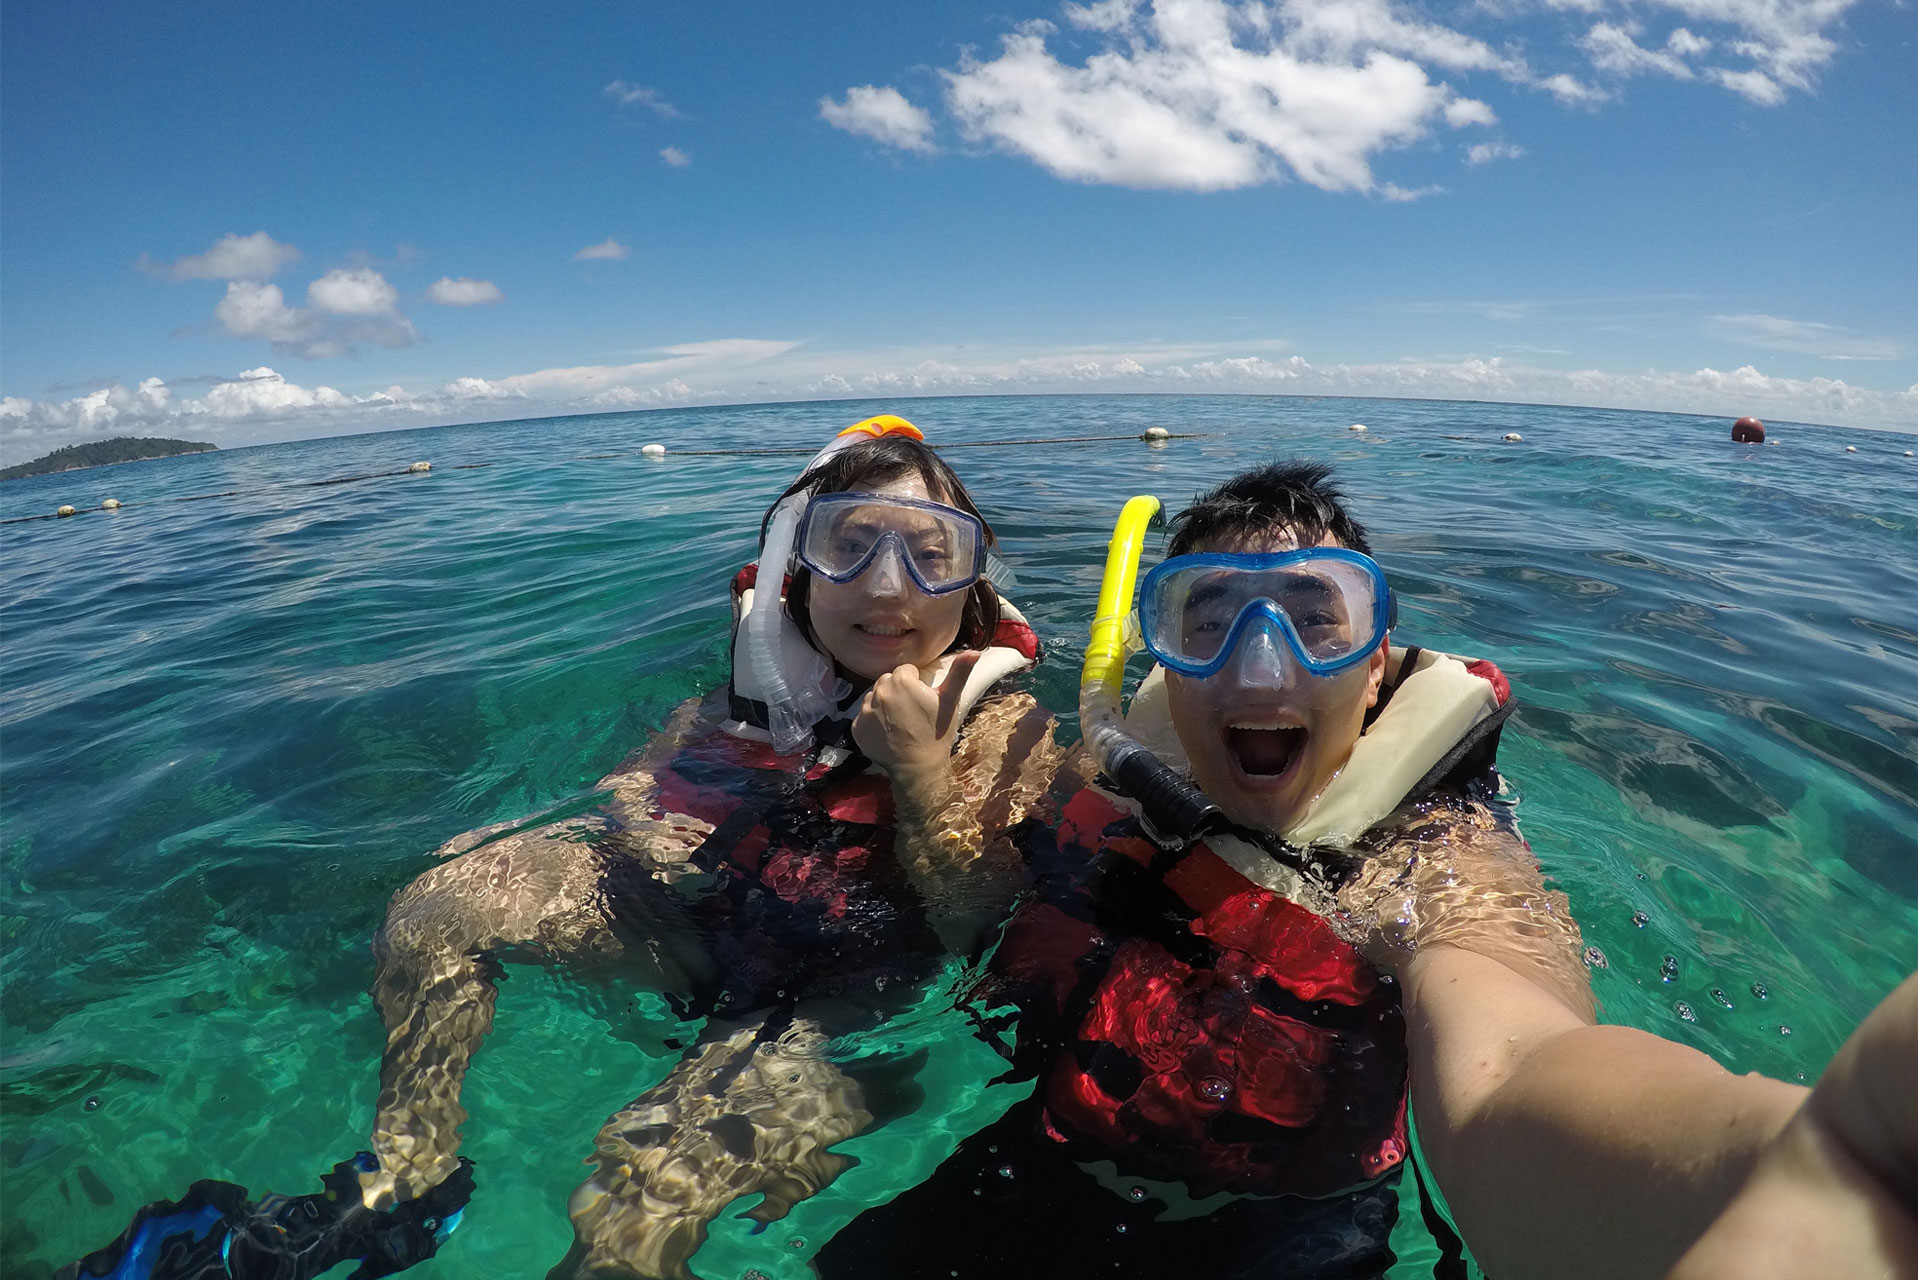 Snorkeling at Koh Lipe with beautiful weather and having fun!